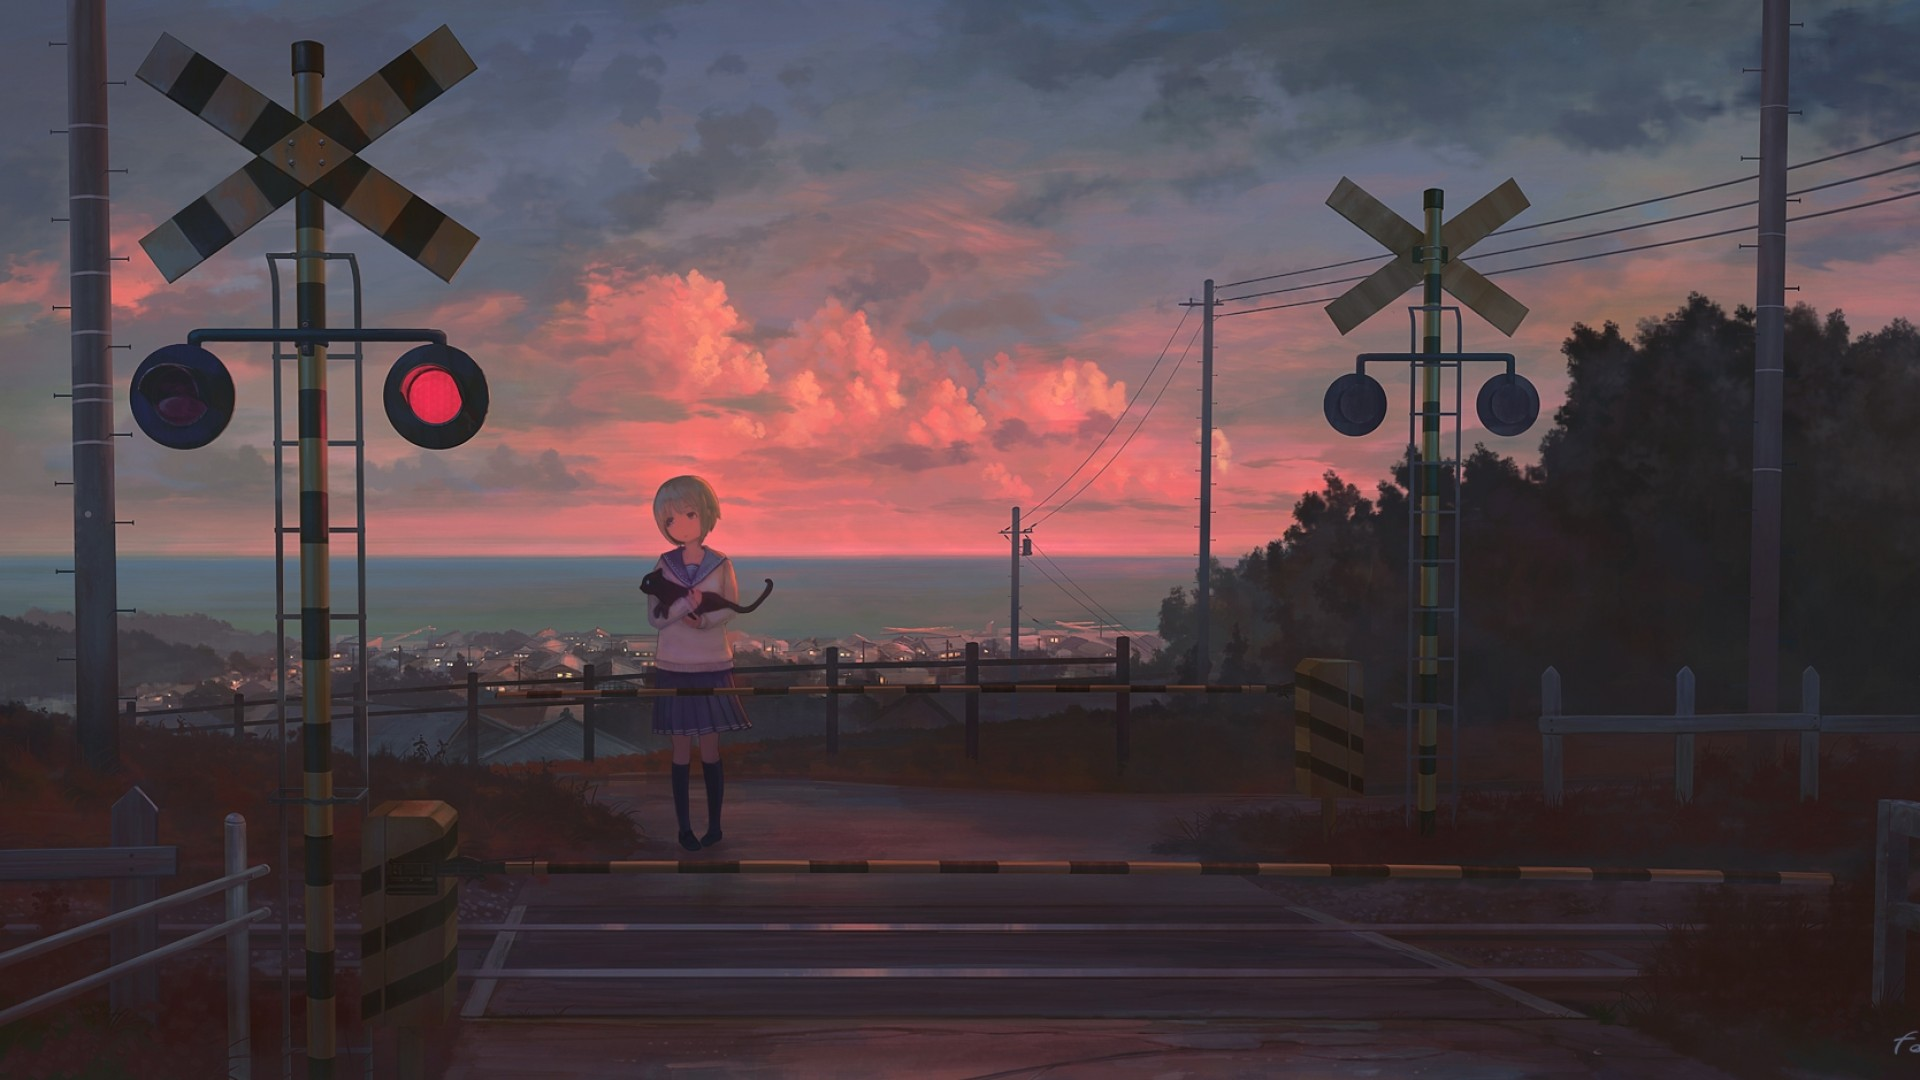 Anime Scenery Wallpaper 1920x1080 Posted By Ryan Tremblay A blog dedicated to the beautiful scenery and landscapes of anime. anime scenery wallpaper 1920x1080